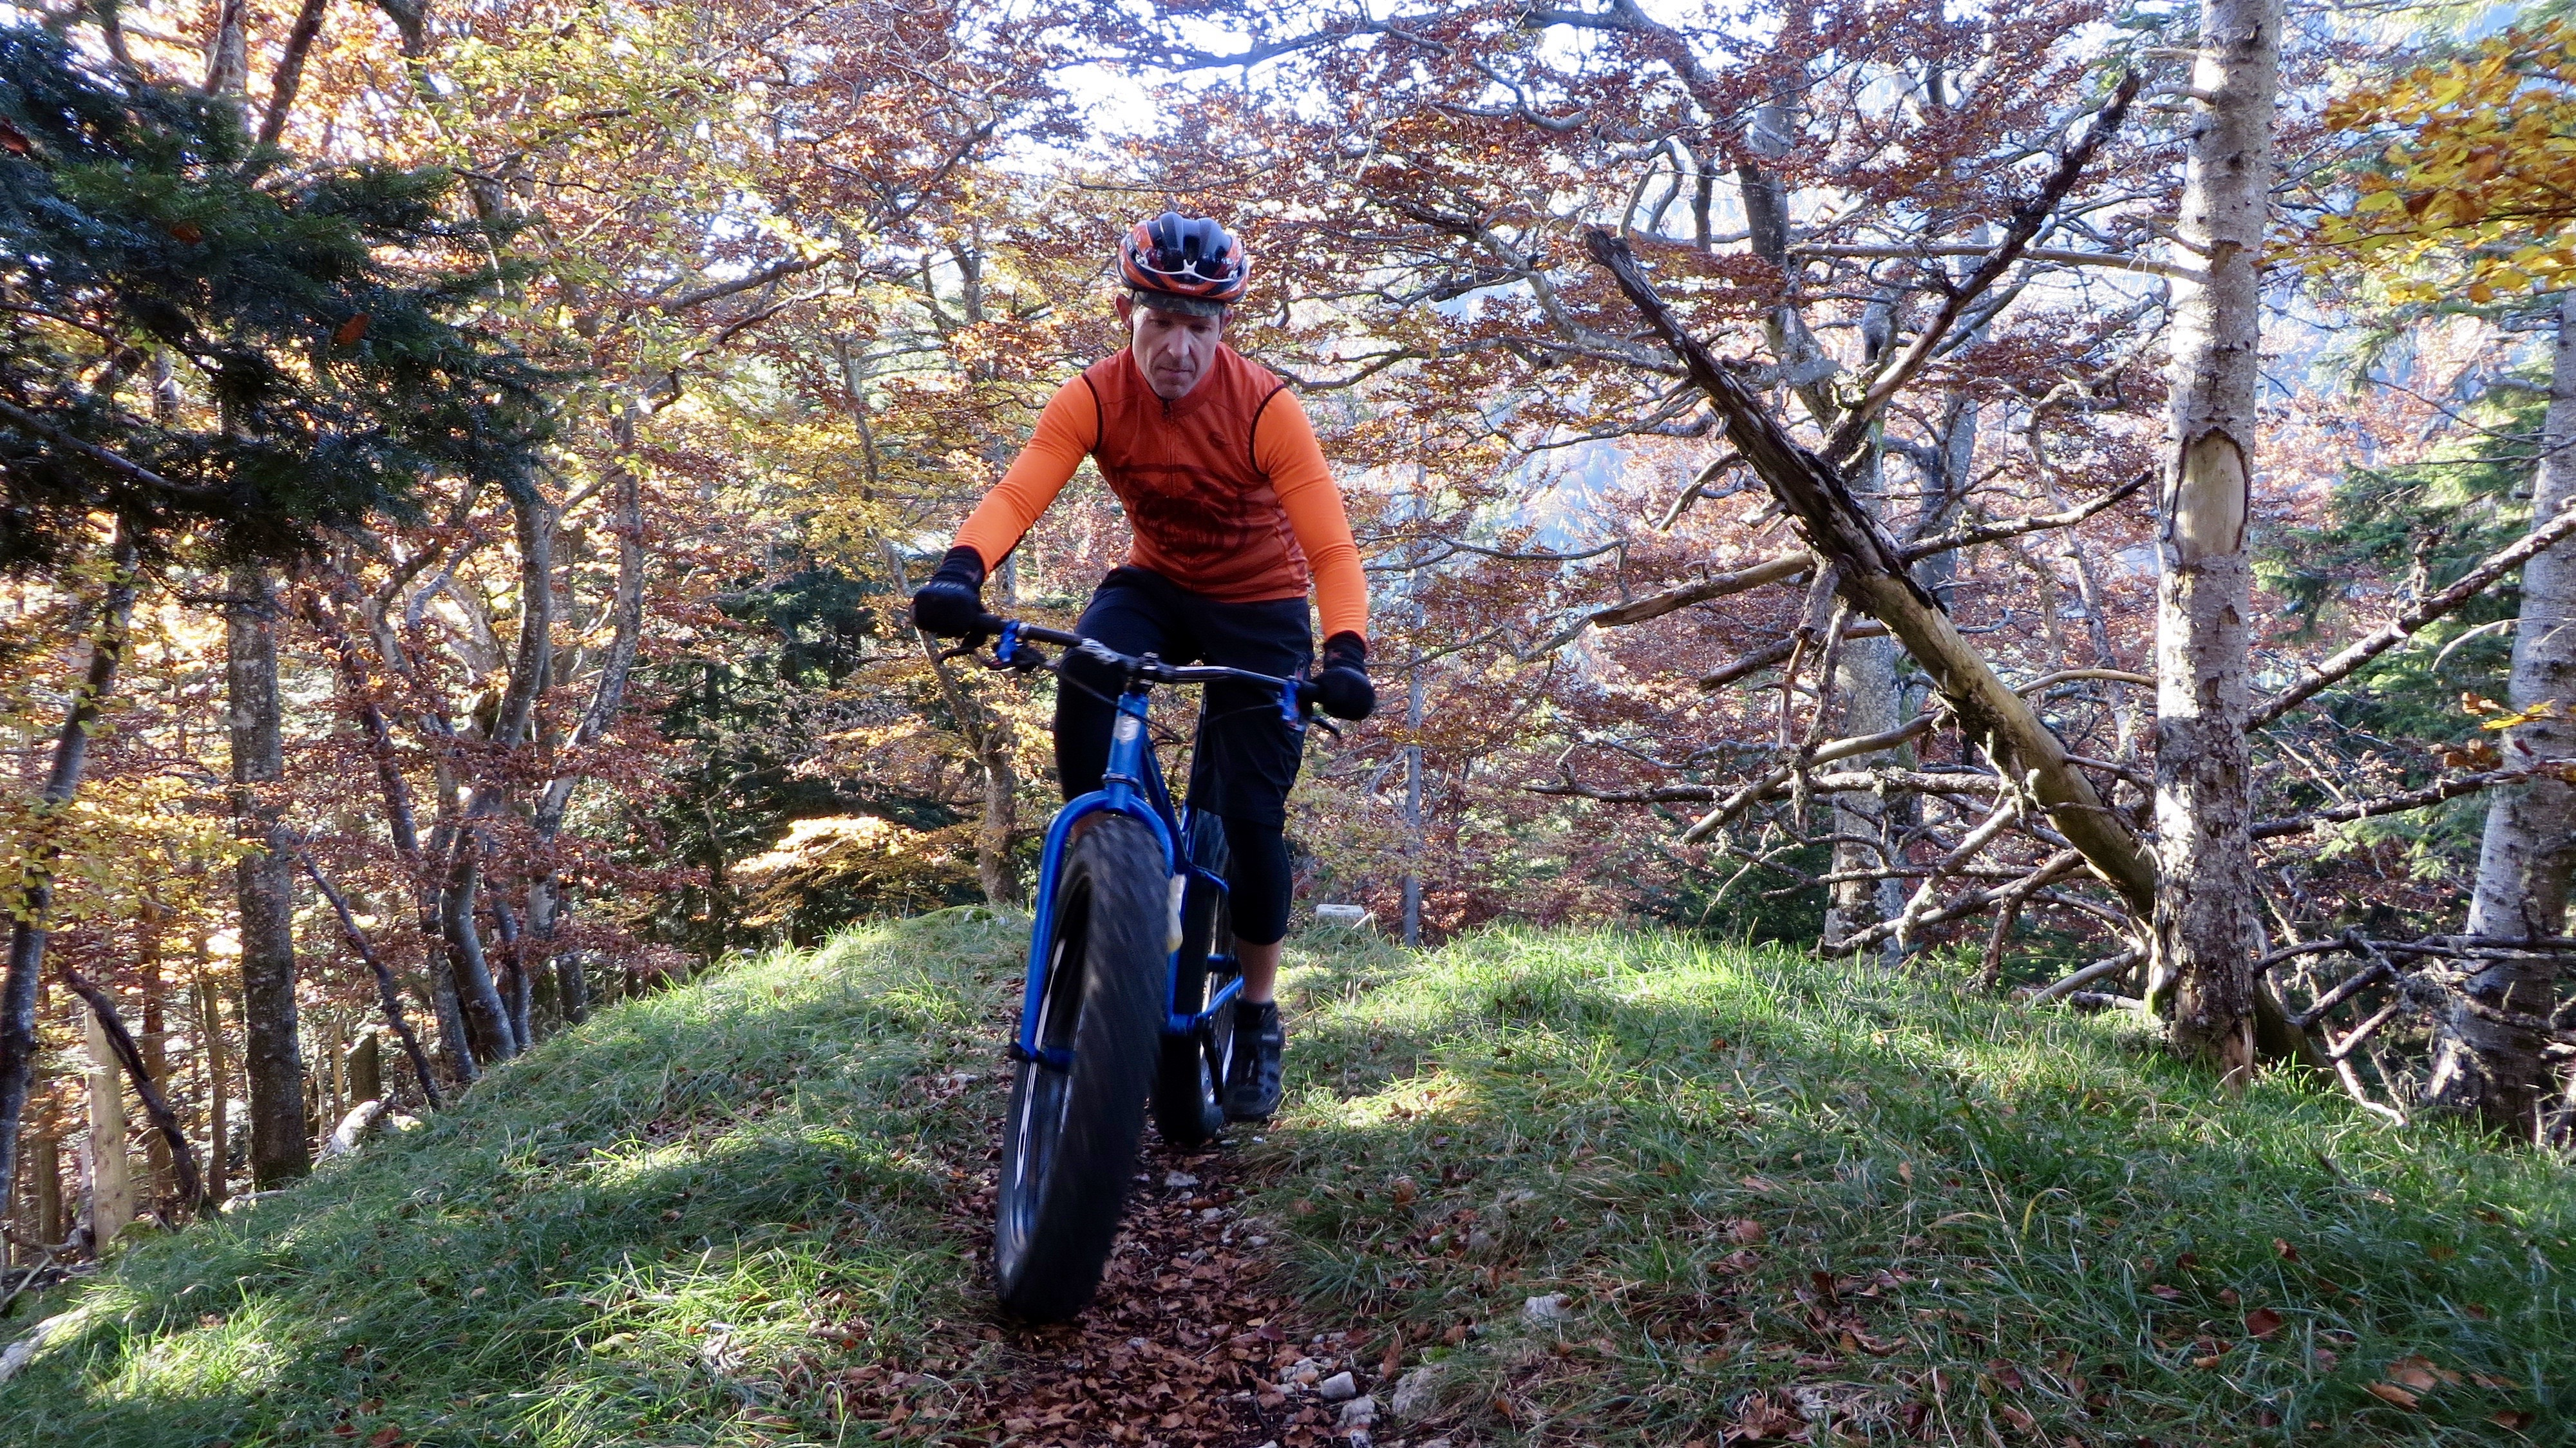 On the trail to Baulmes on October 30, 2016.